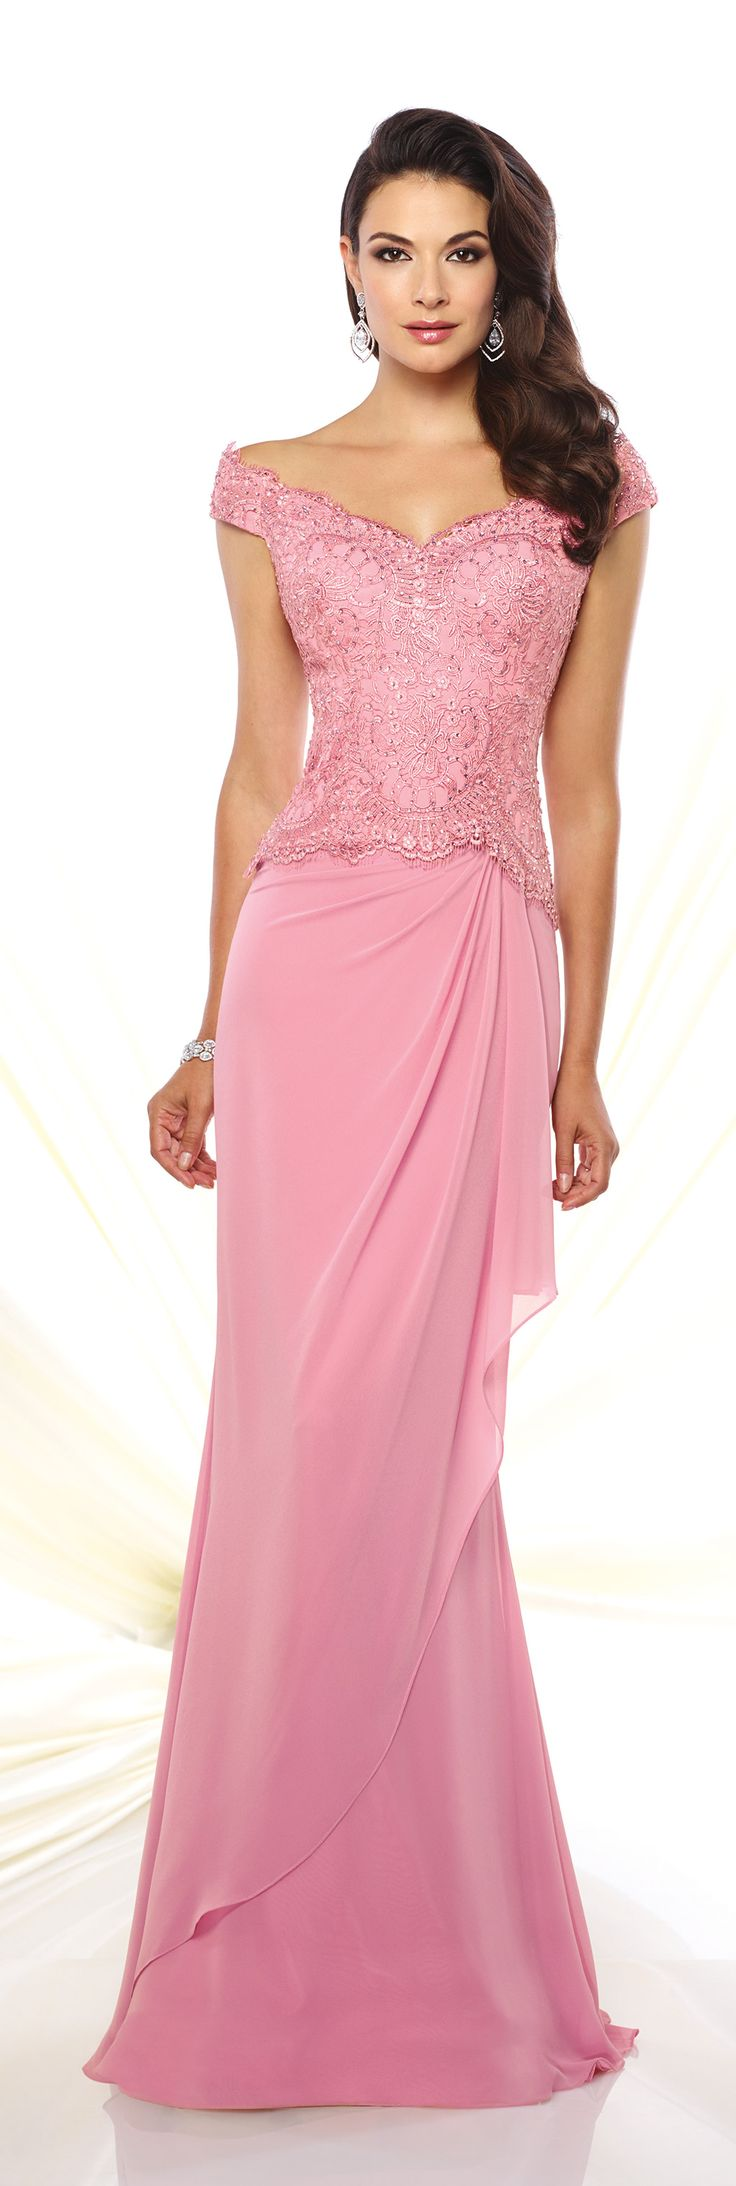 Formal Evening Gowns by Mon Cheri - Spring 2016 - Style No. 116937 #eveninggowns